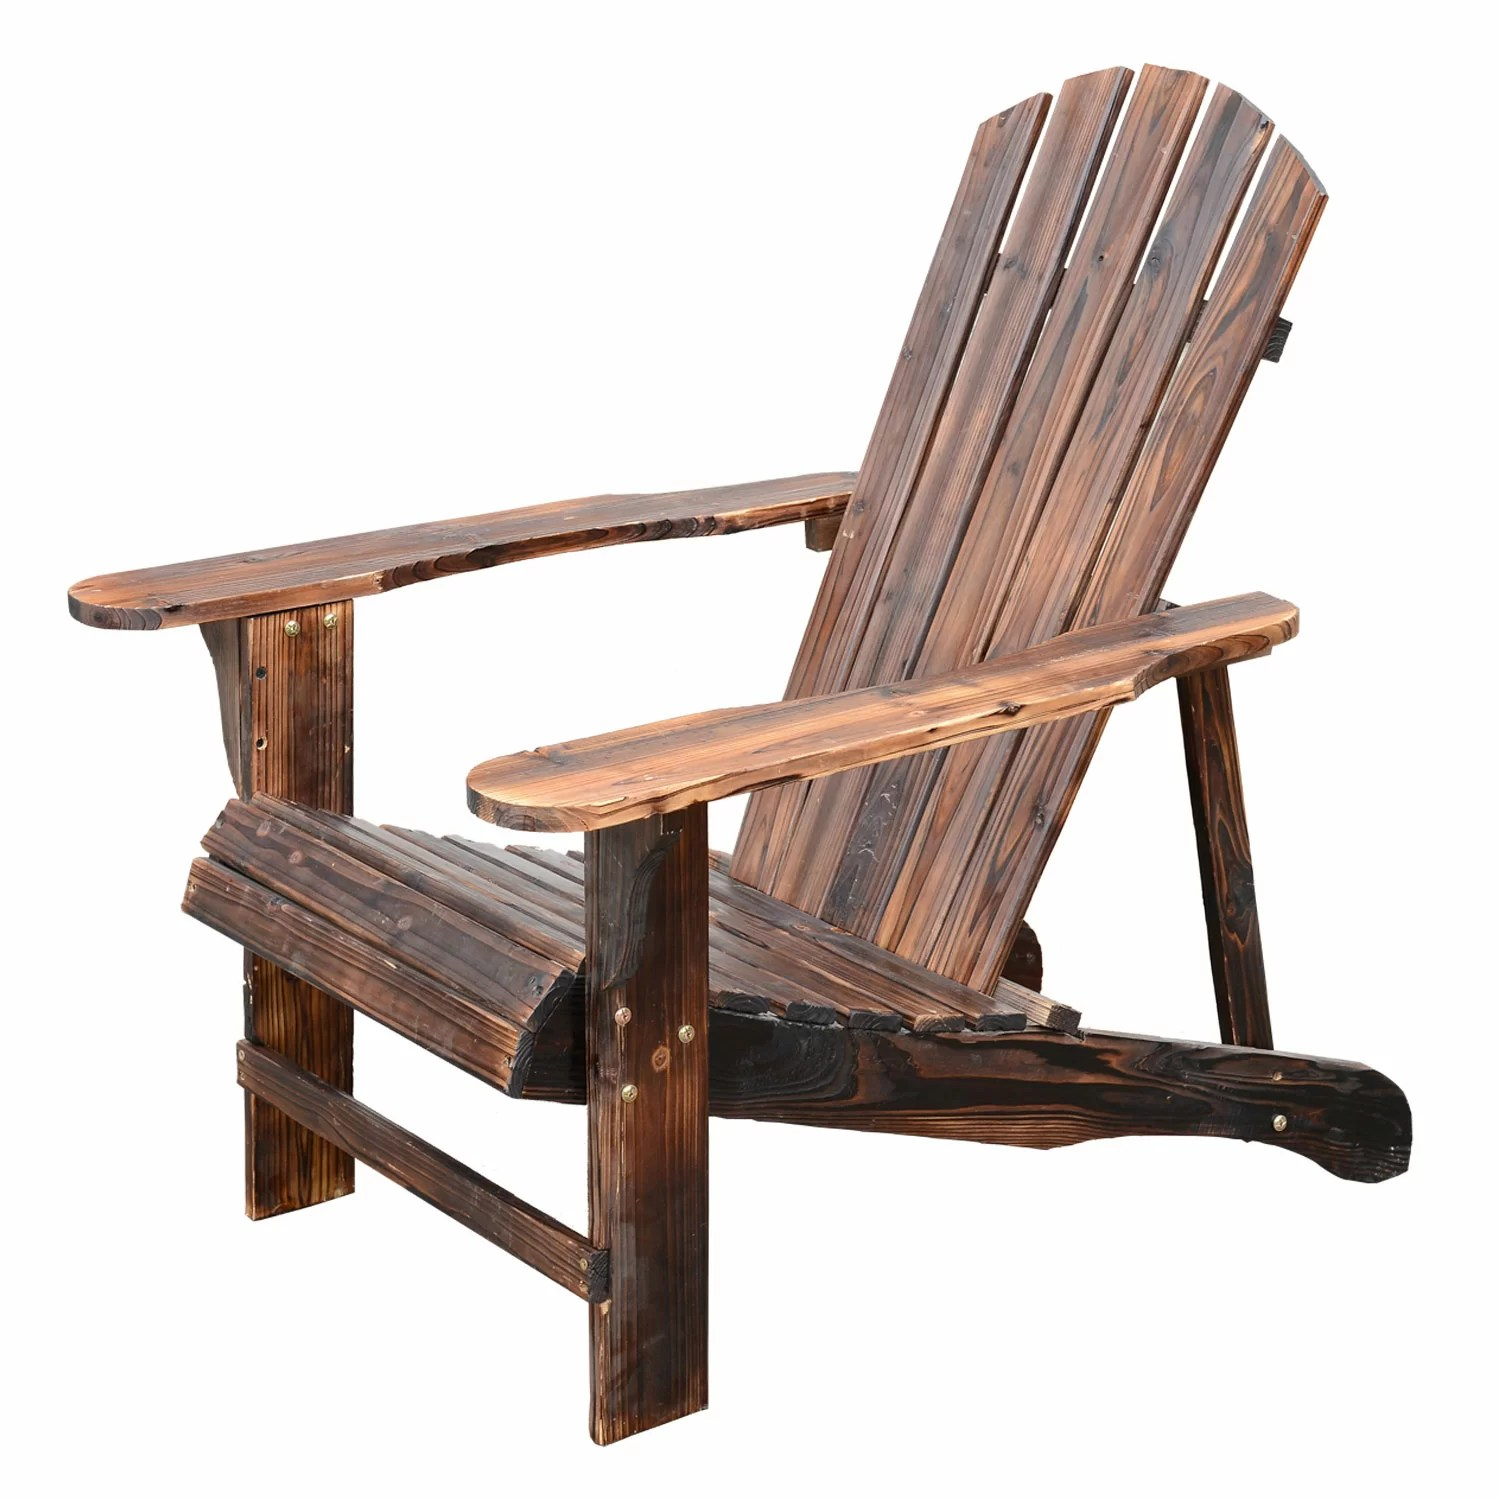 Outdoor Wooden Chairs Outsunny Wooden Adirondack Outdoor Patio Lounge Chair